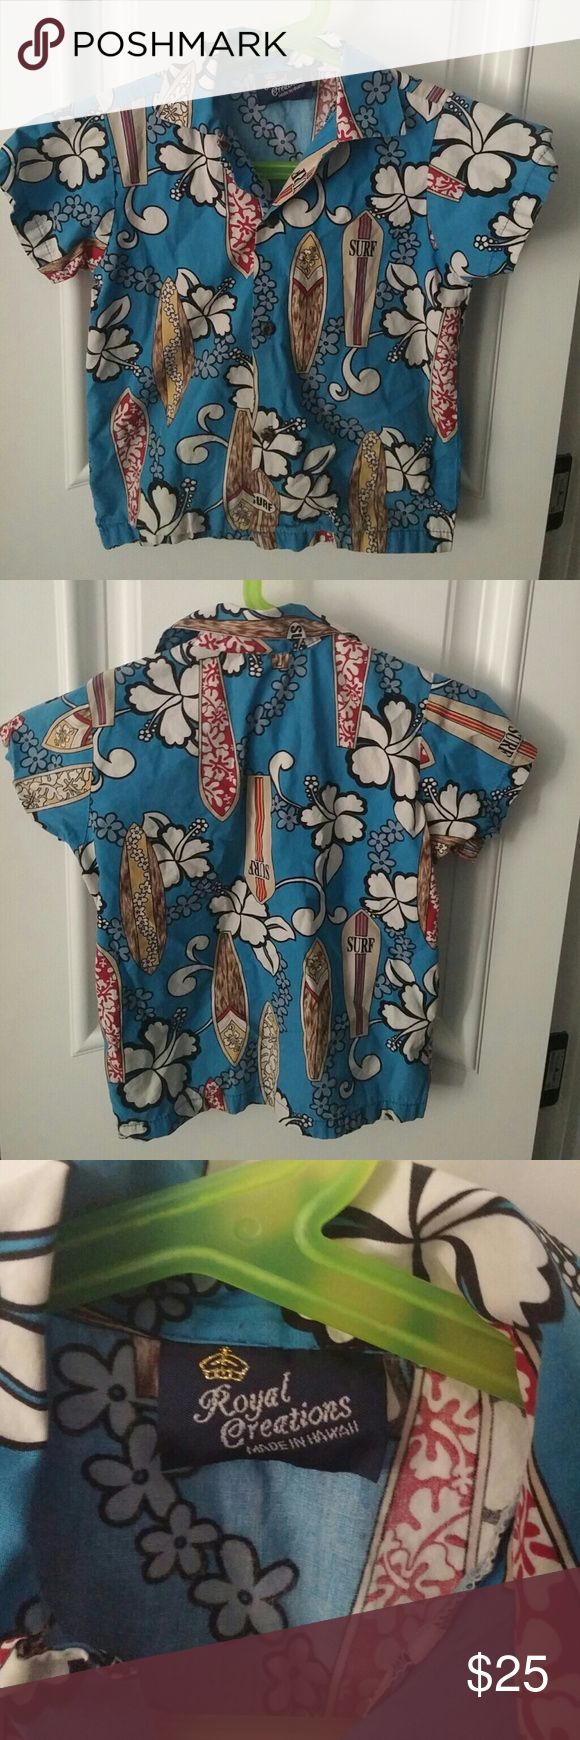 Vintage youth Hawaiian shirt Vintage boys Hawaiian shirt made in Hawaii.  No size tag, but I'm guessing a young boys 4-6.  My son is average size and weight and wore it when he was 5 and 6 yo Royal Creations Shirts & Tops Button Down Shirts